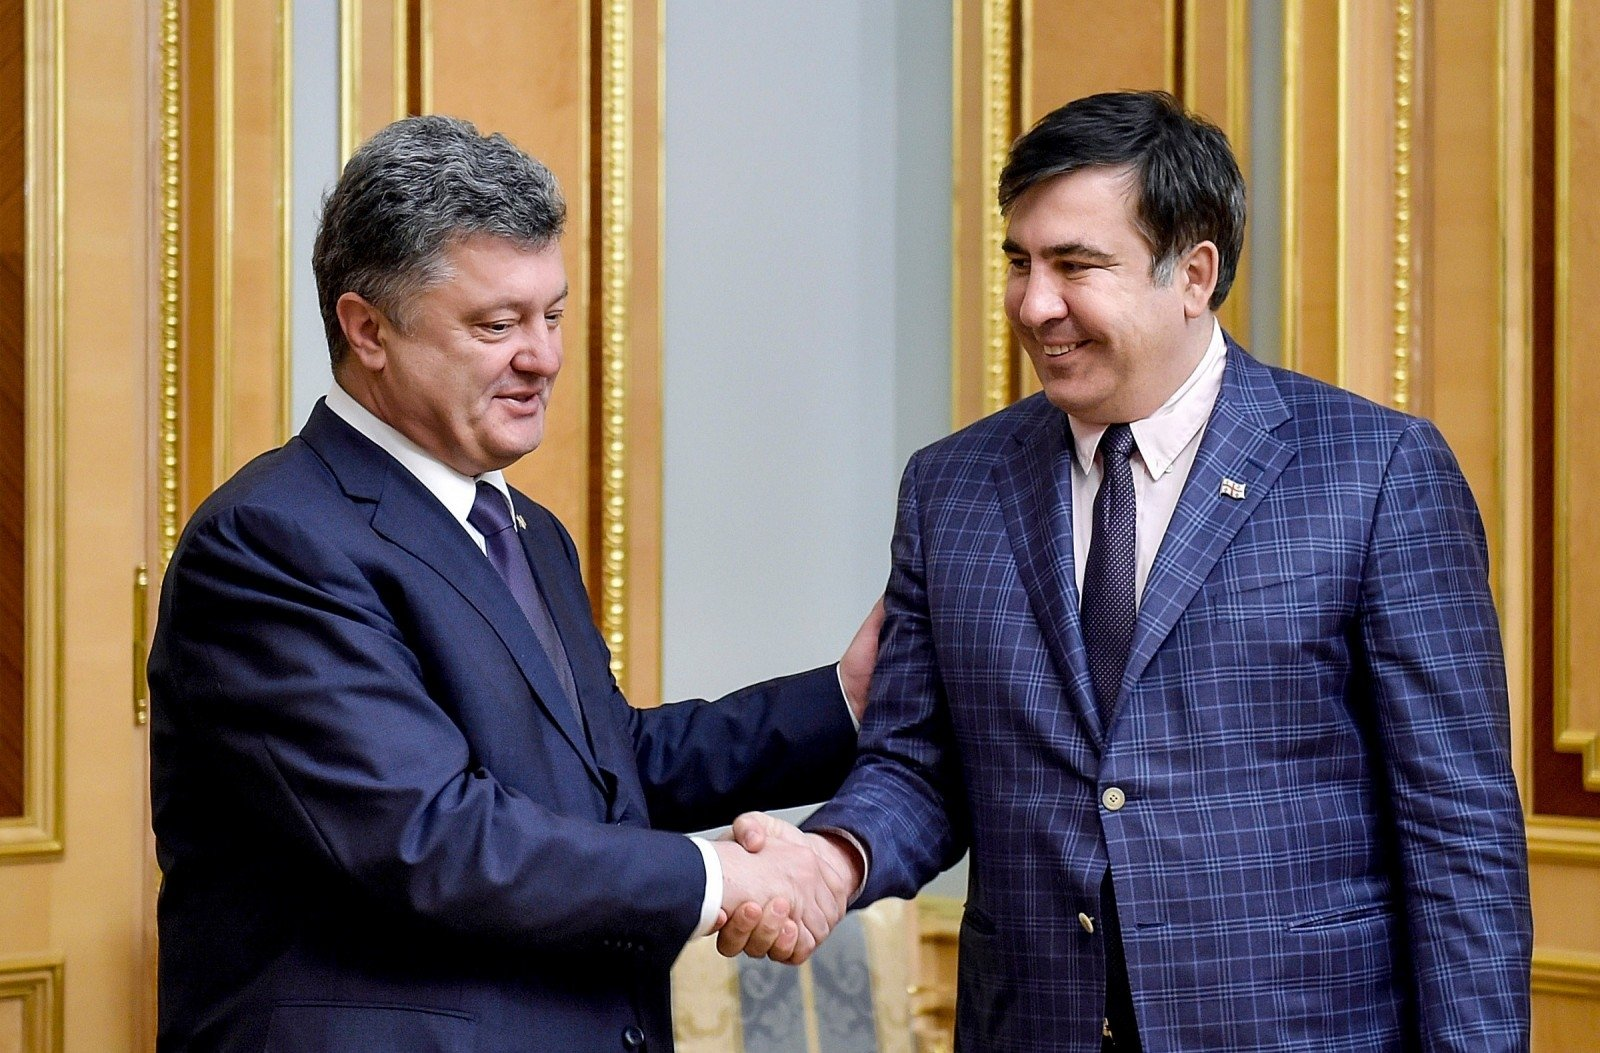 Saakashvili's hands covered in blood - Ukraine's president in